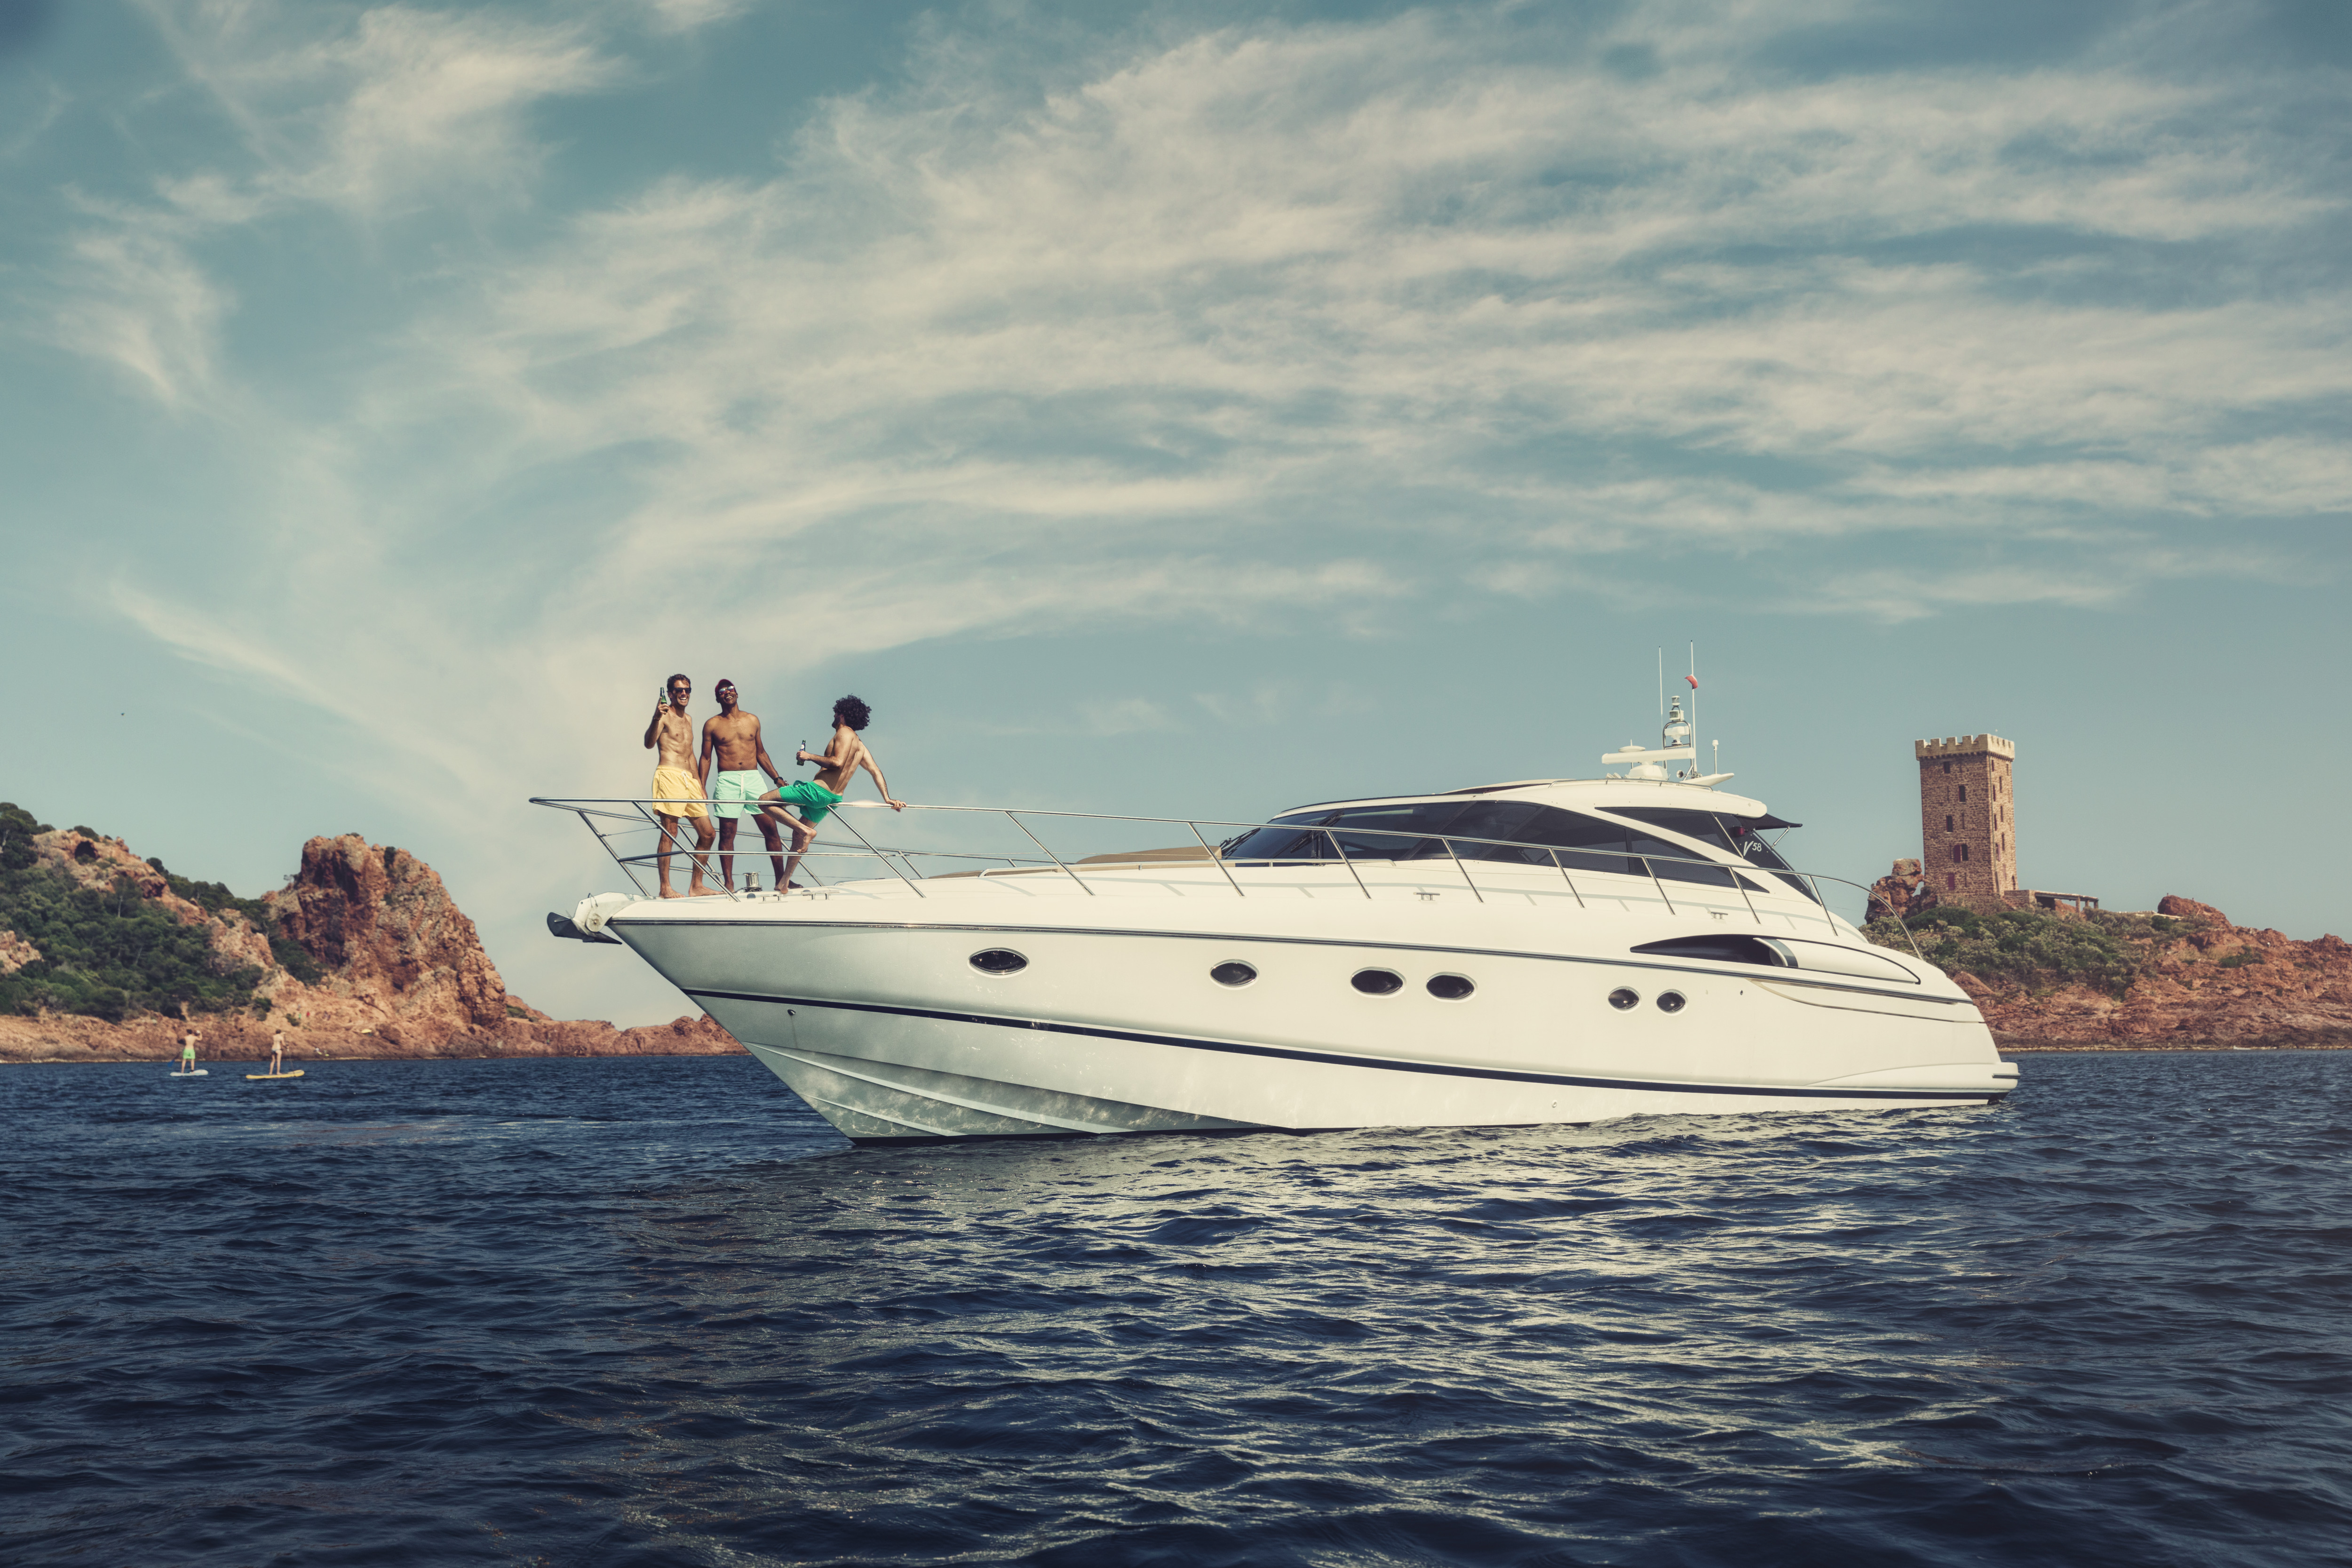 ᐅ Boat & Yacht – Air conditioners, refrigeration and sanitation |